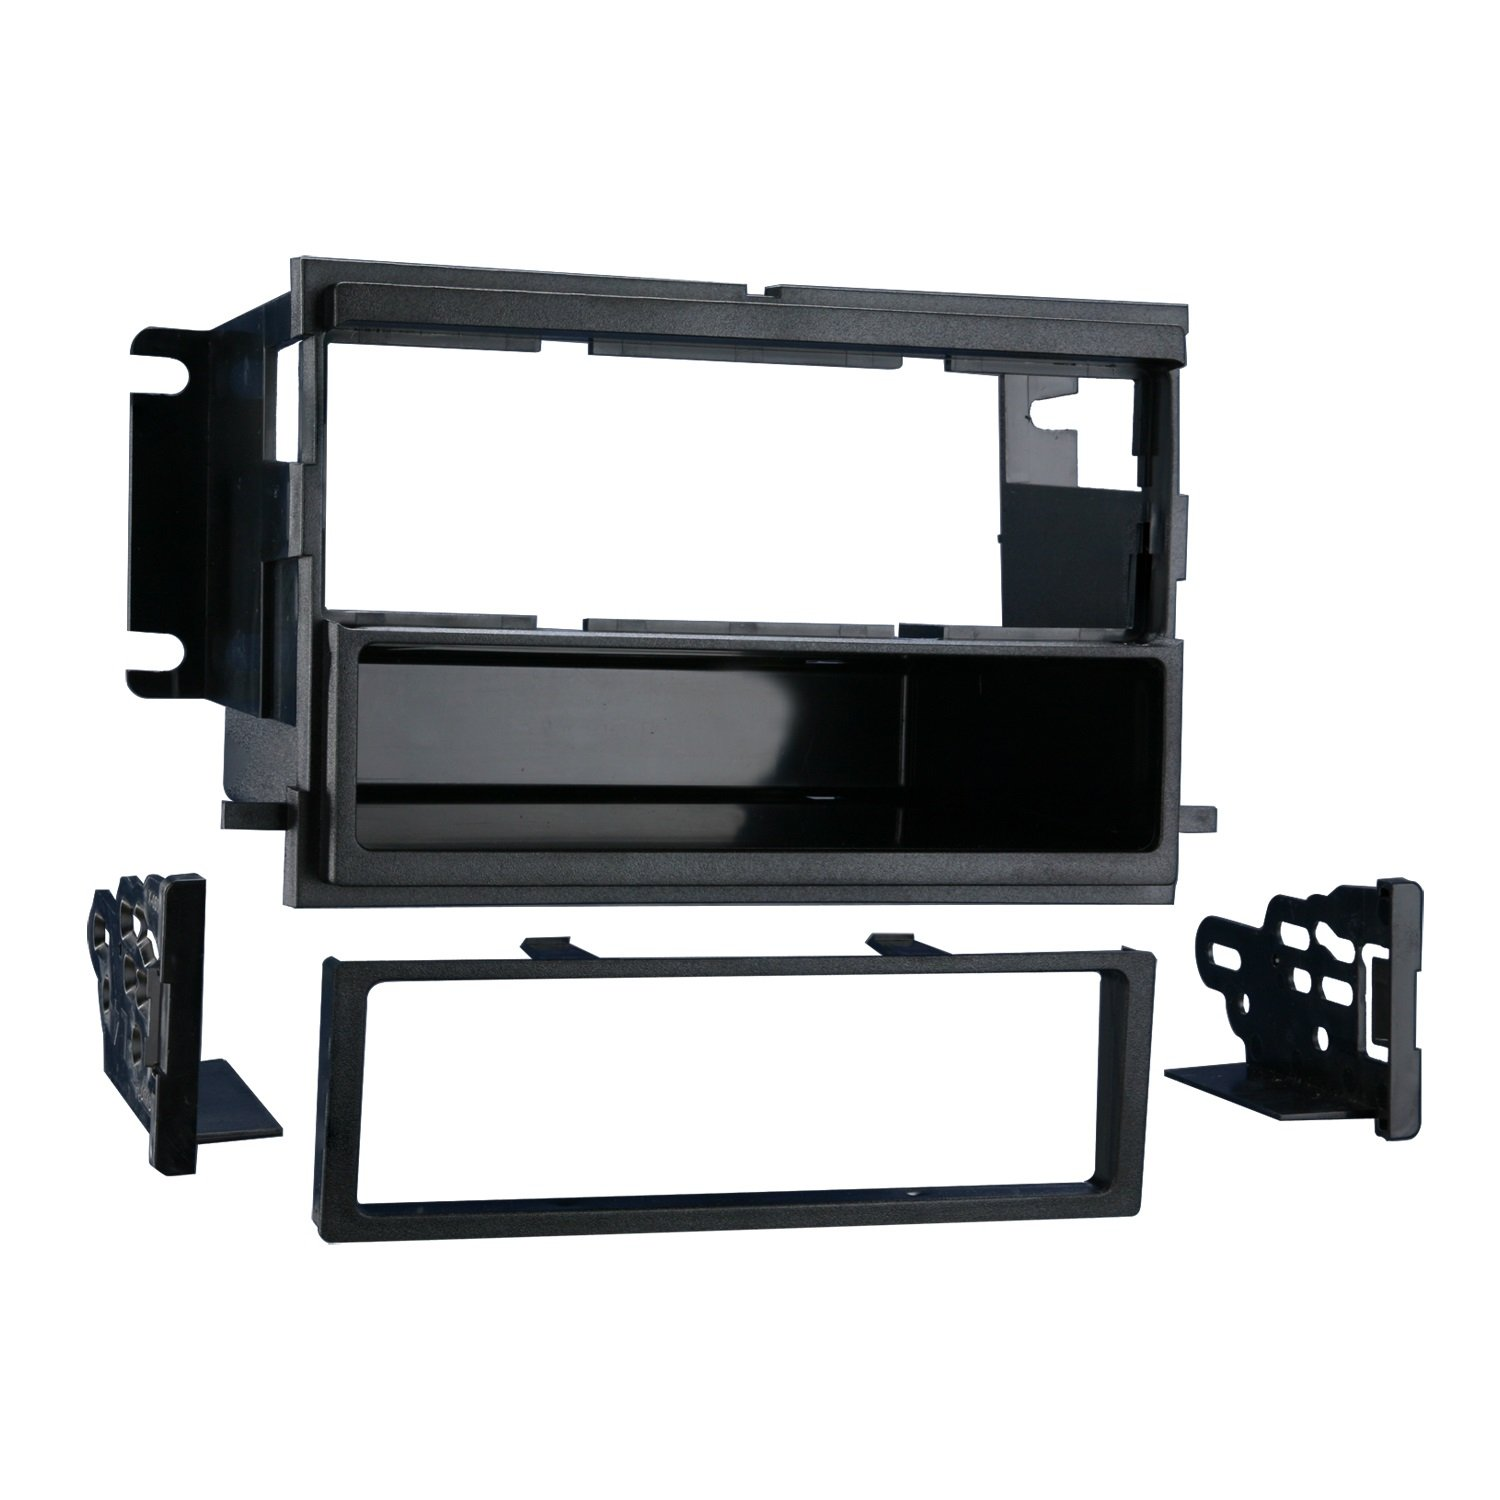 Metra 99-5808 Single DIN Installation Multi-Kit for Select 2004-up Ford/Mercury Vehicles (Black)